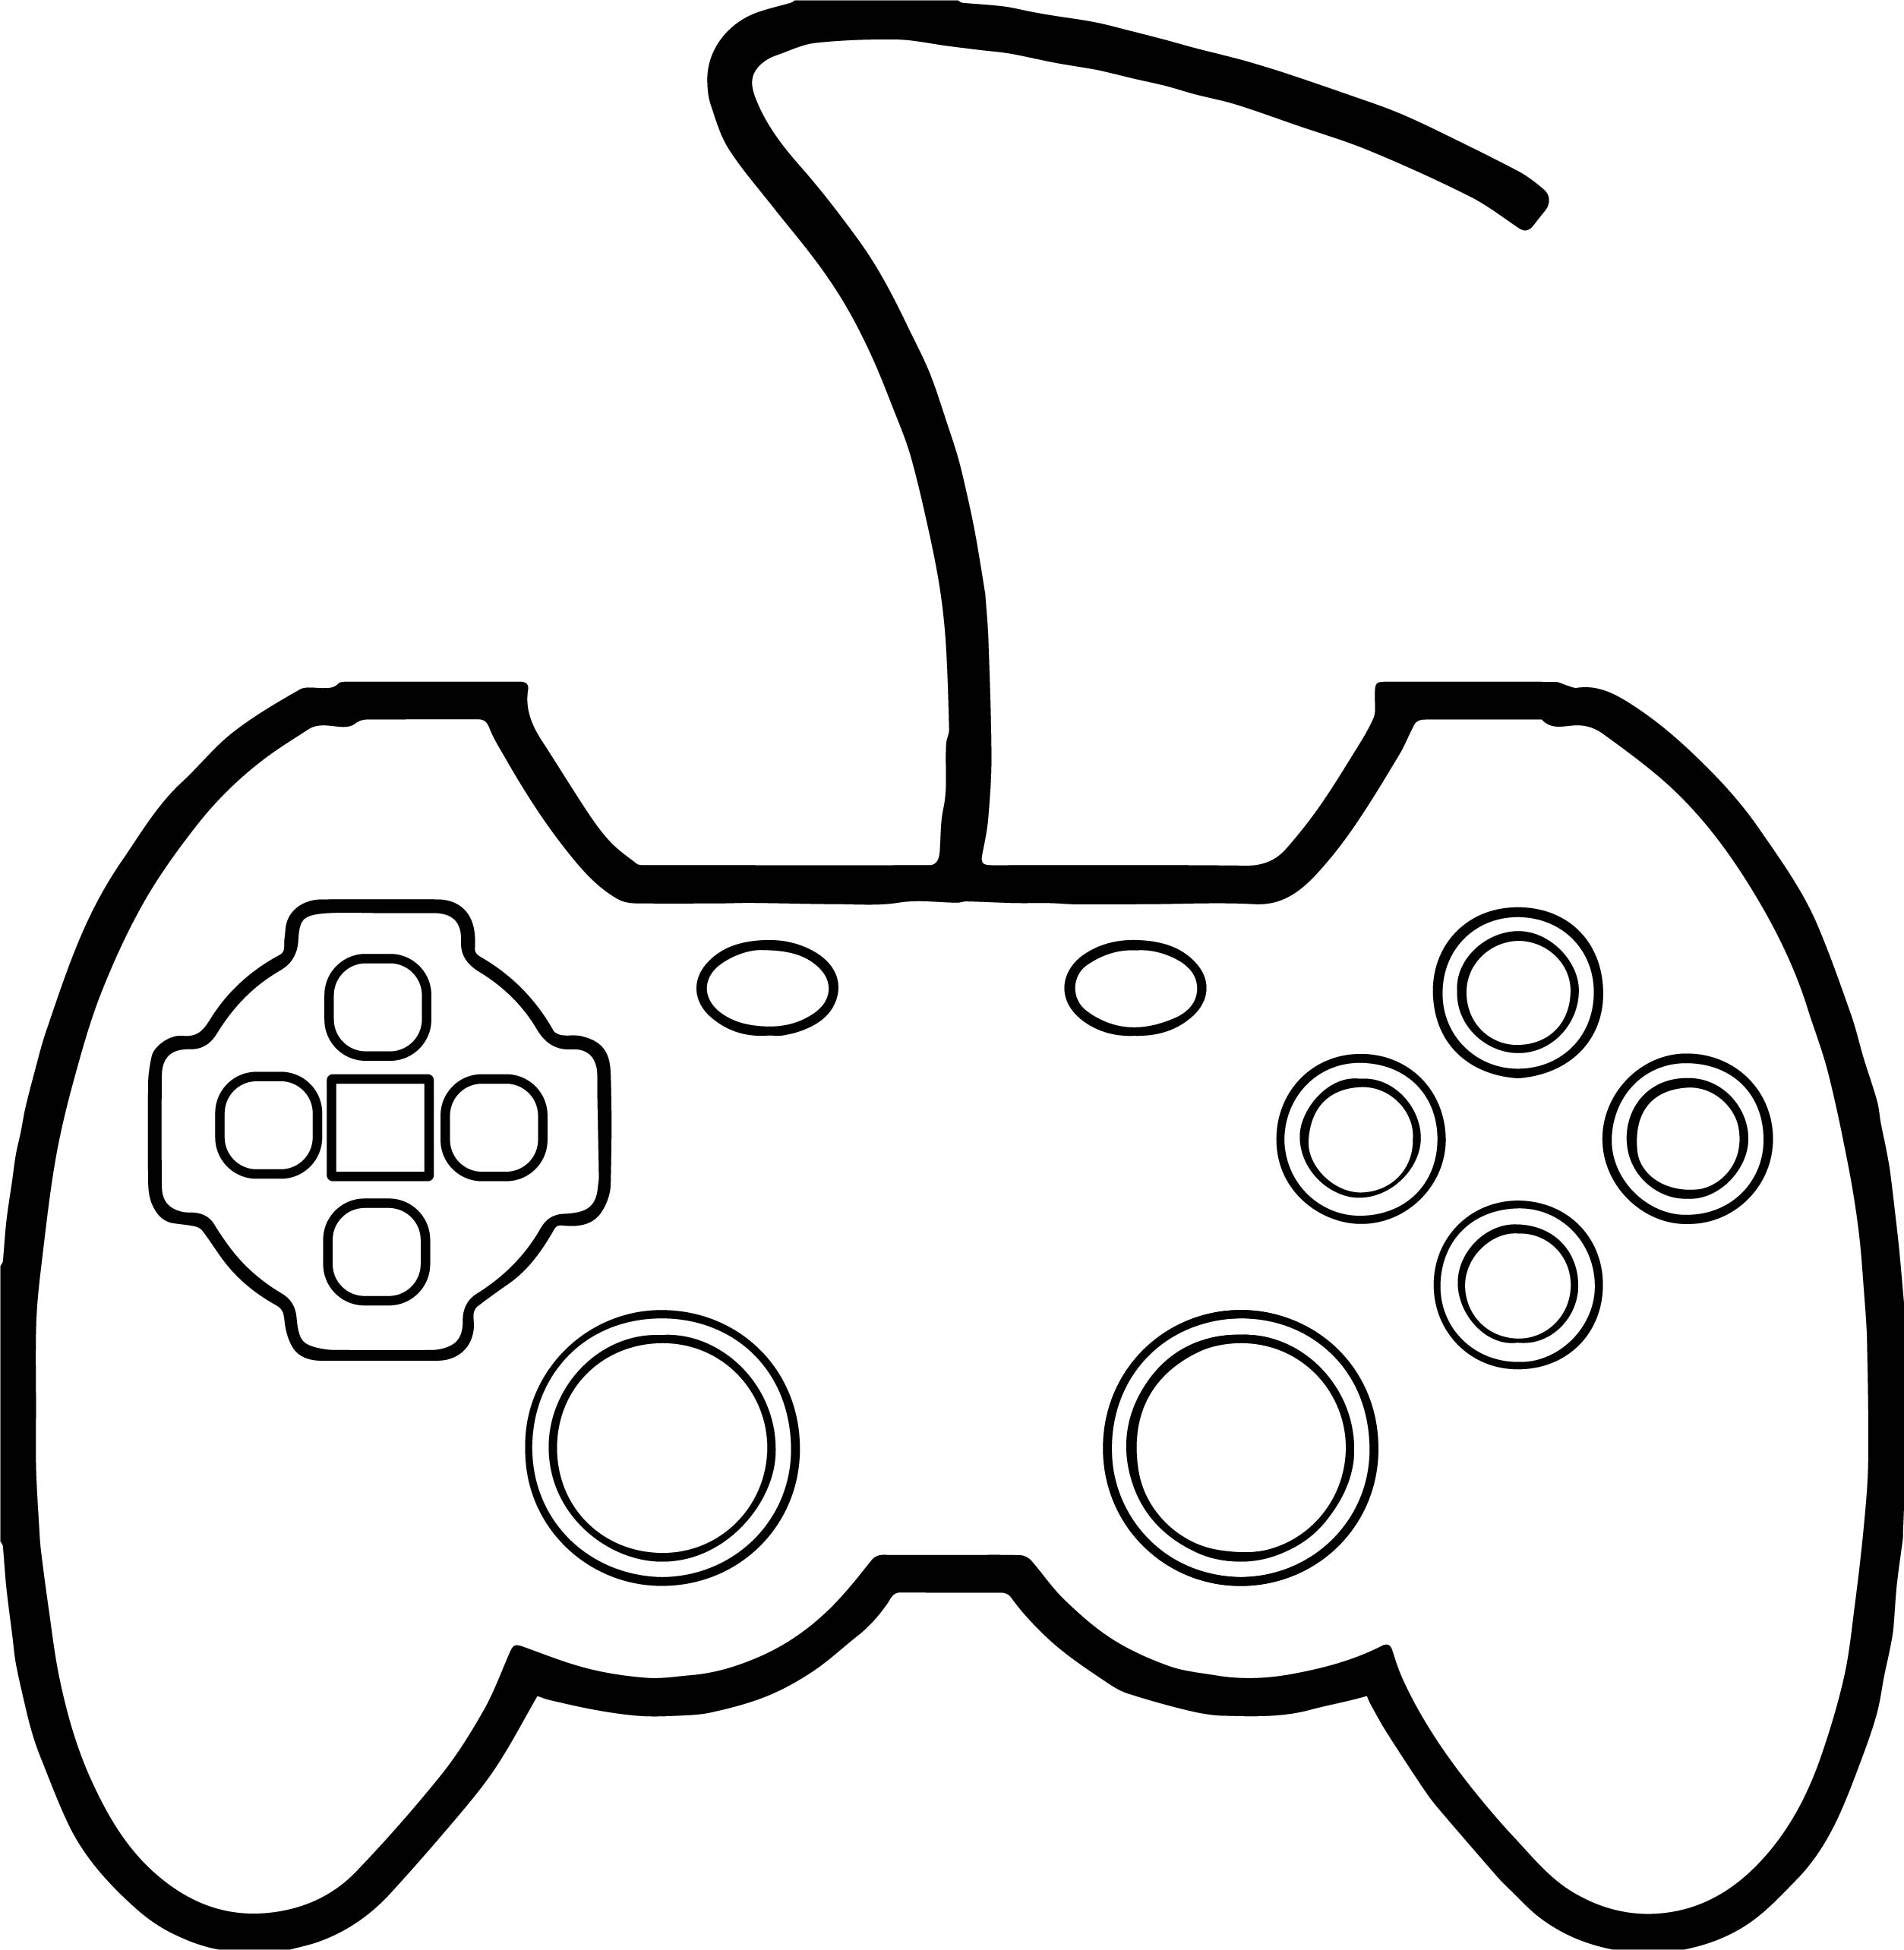 Coloring page xbox - Joypad The Mad Processor Playing Computer Games Coloring Page